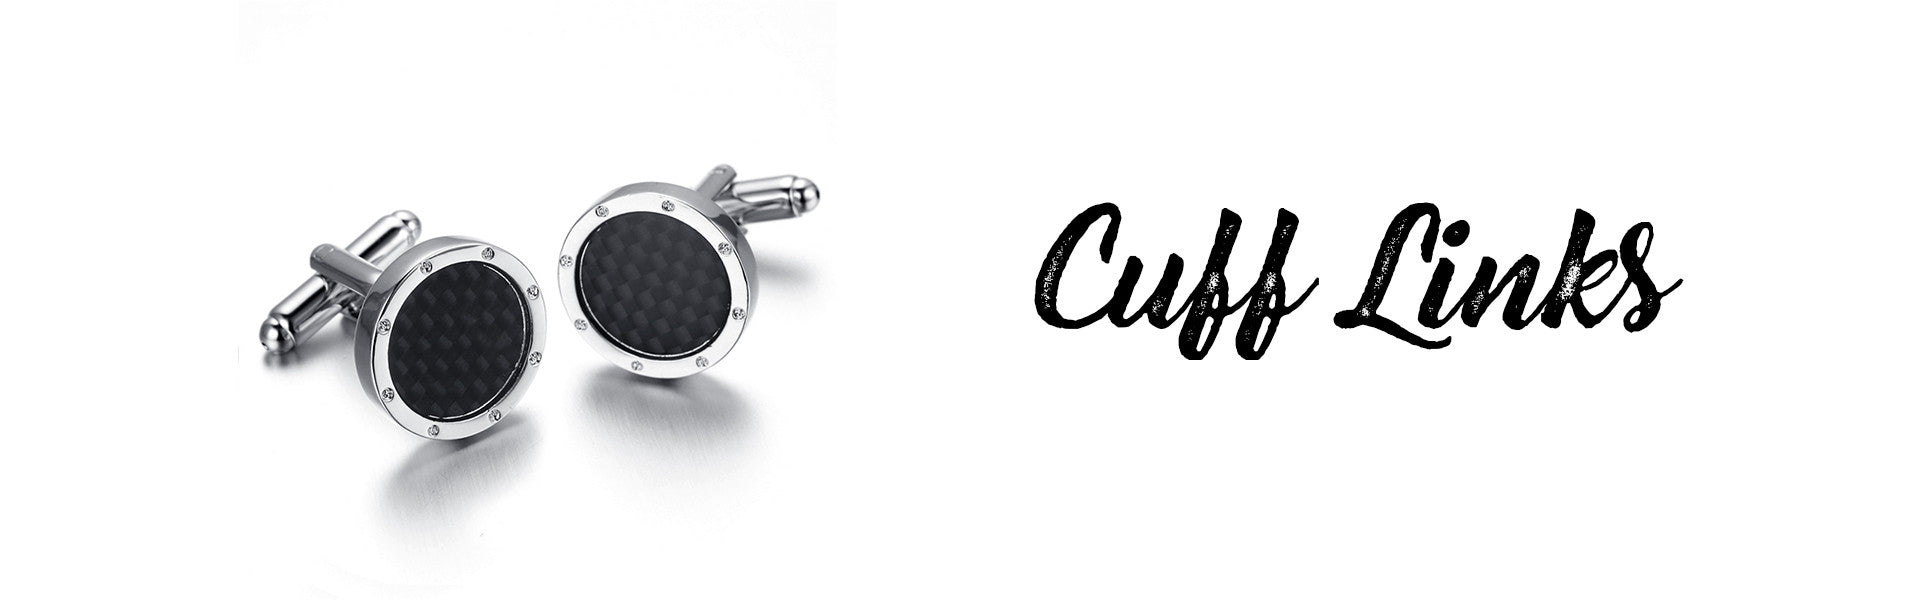 Mens Cuff Links | Shop Online Fashion Jewellery